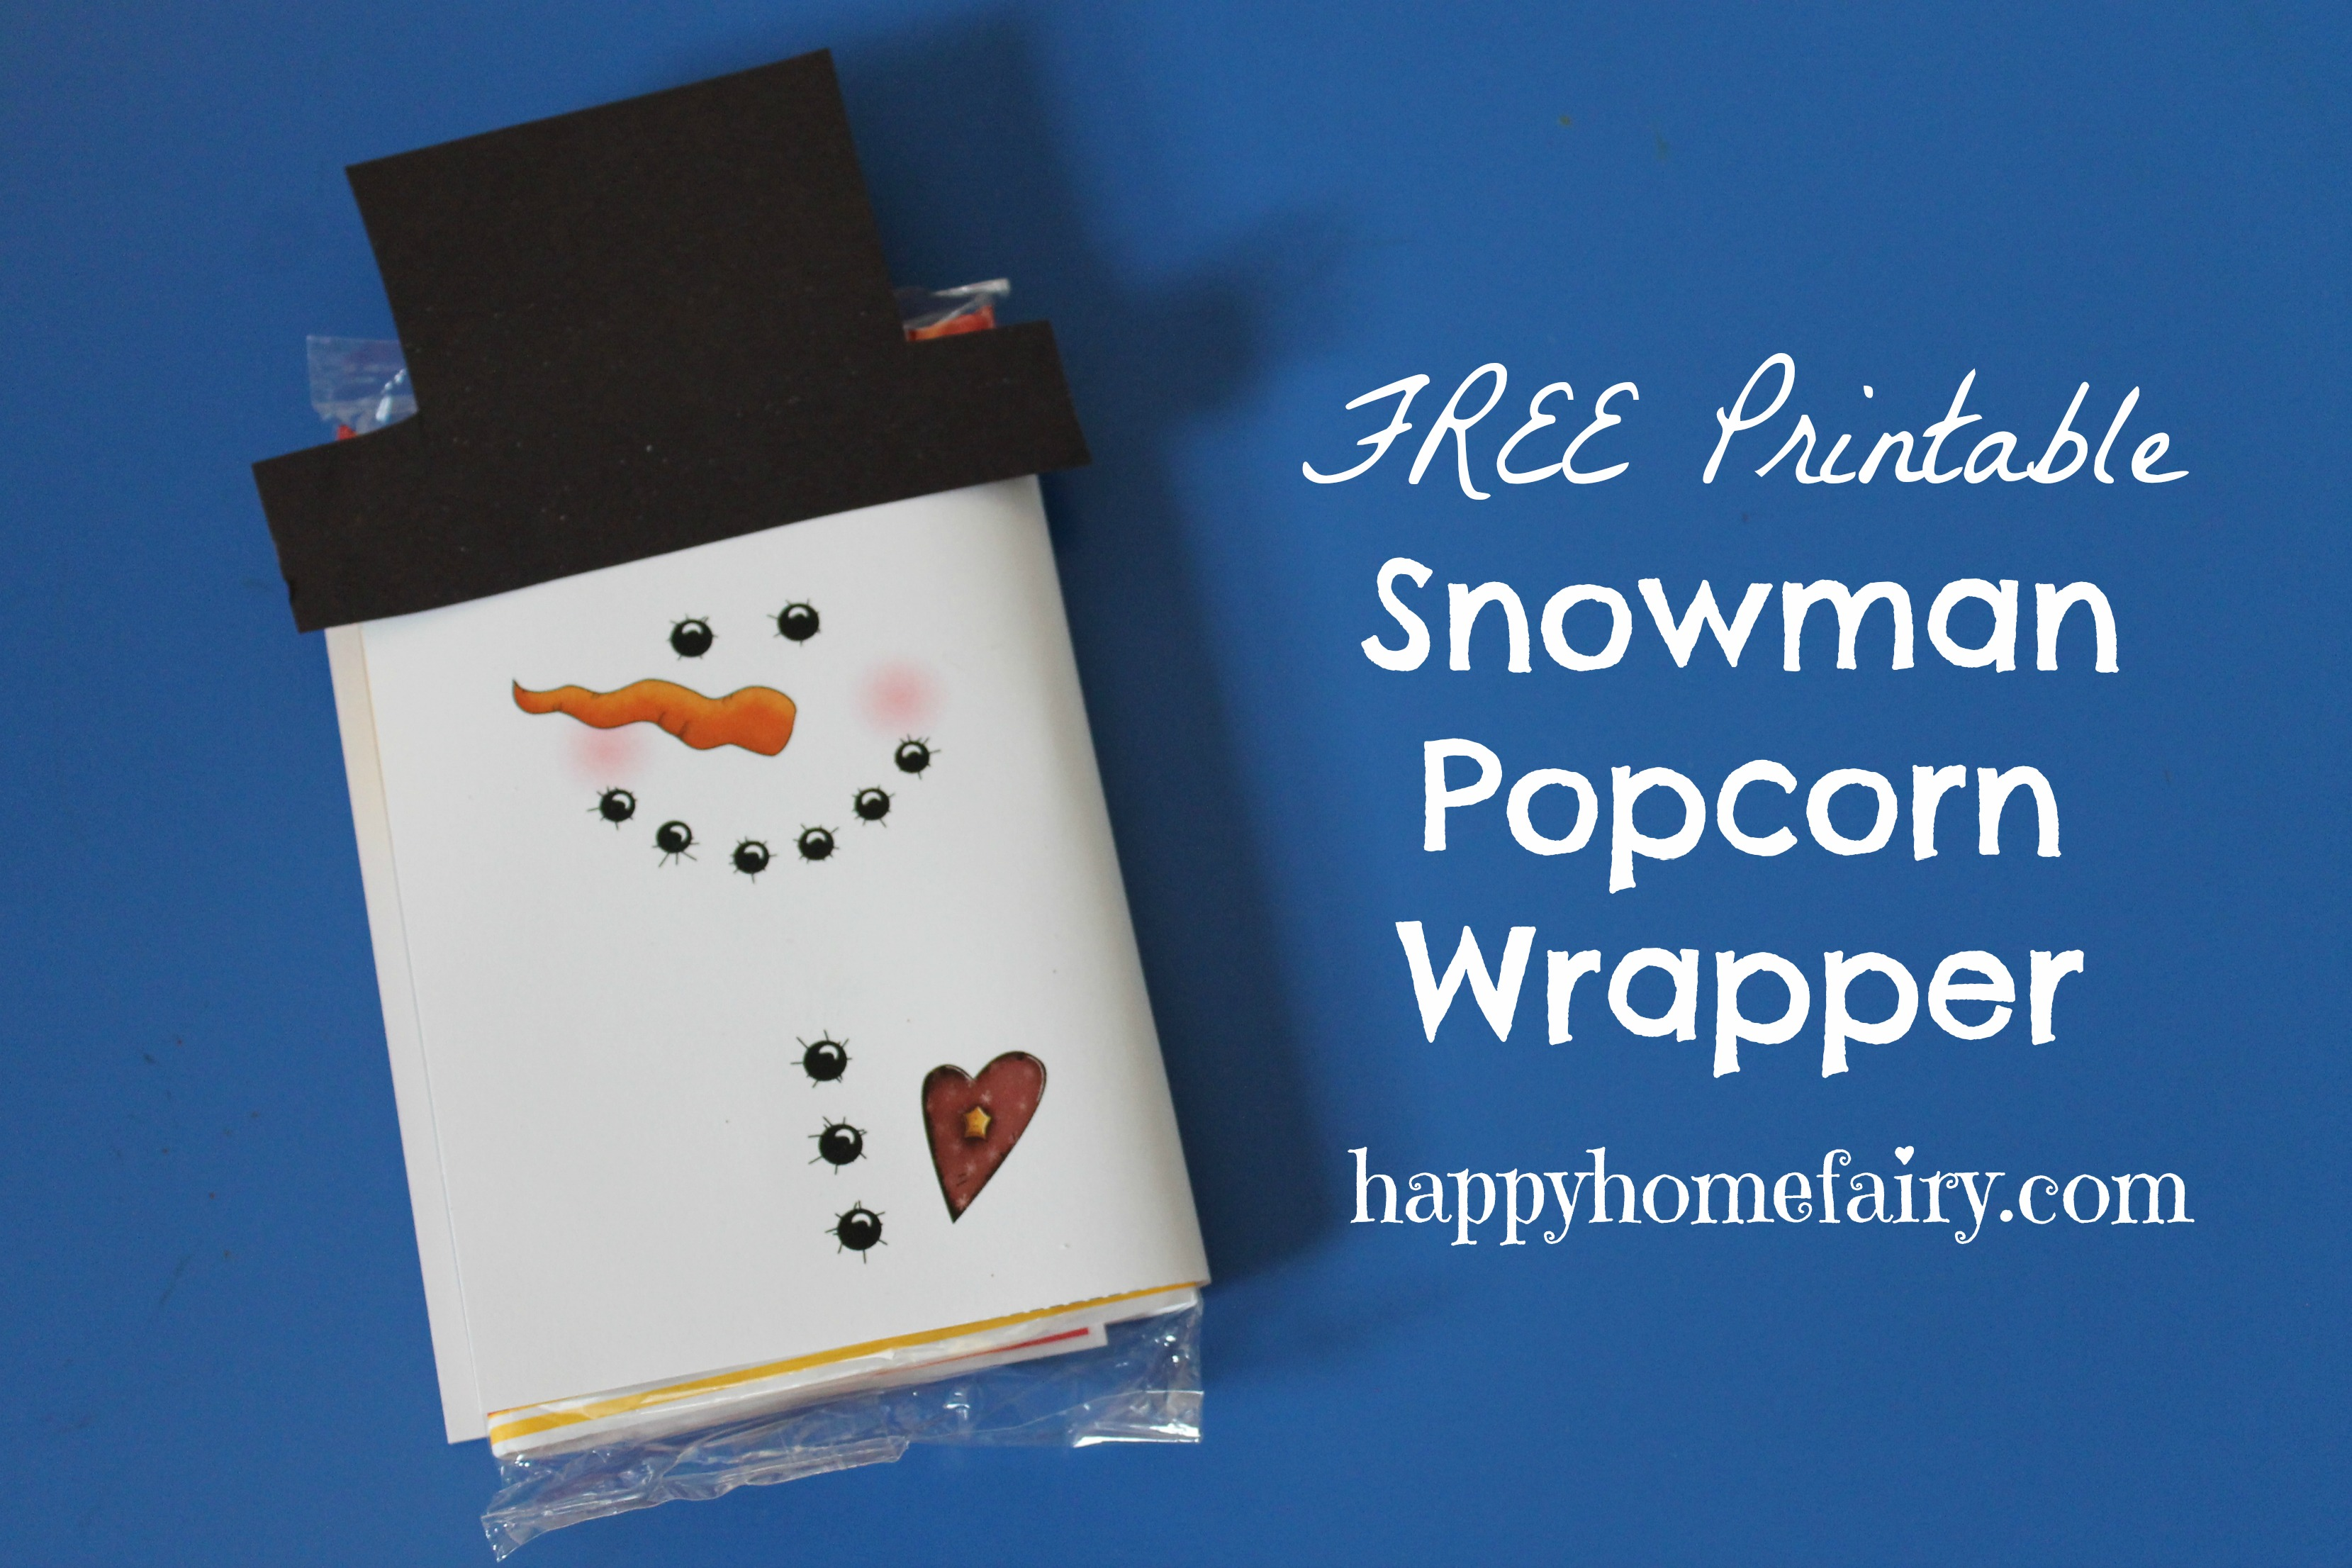 picture regarding Snowman Candy Bar Wrapper Free Printable named Snowman Popcorn Wrapper - Cost-free Printable! - Joyful Household Fairy